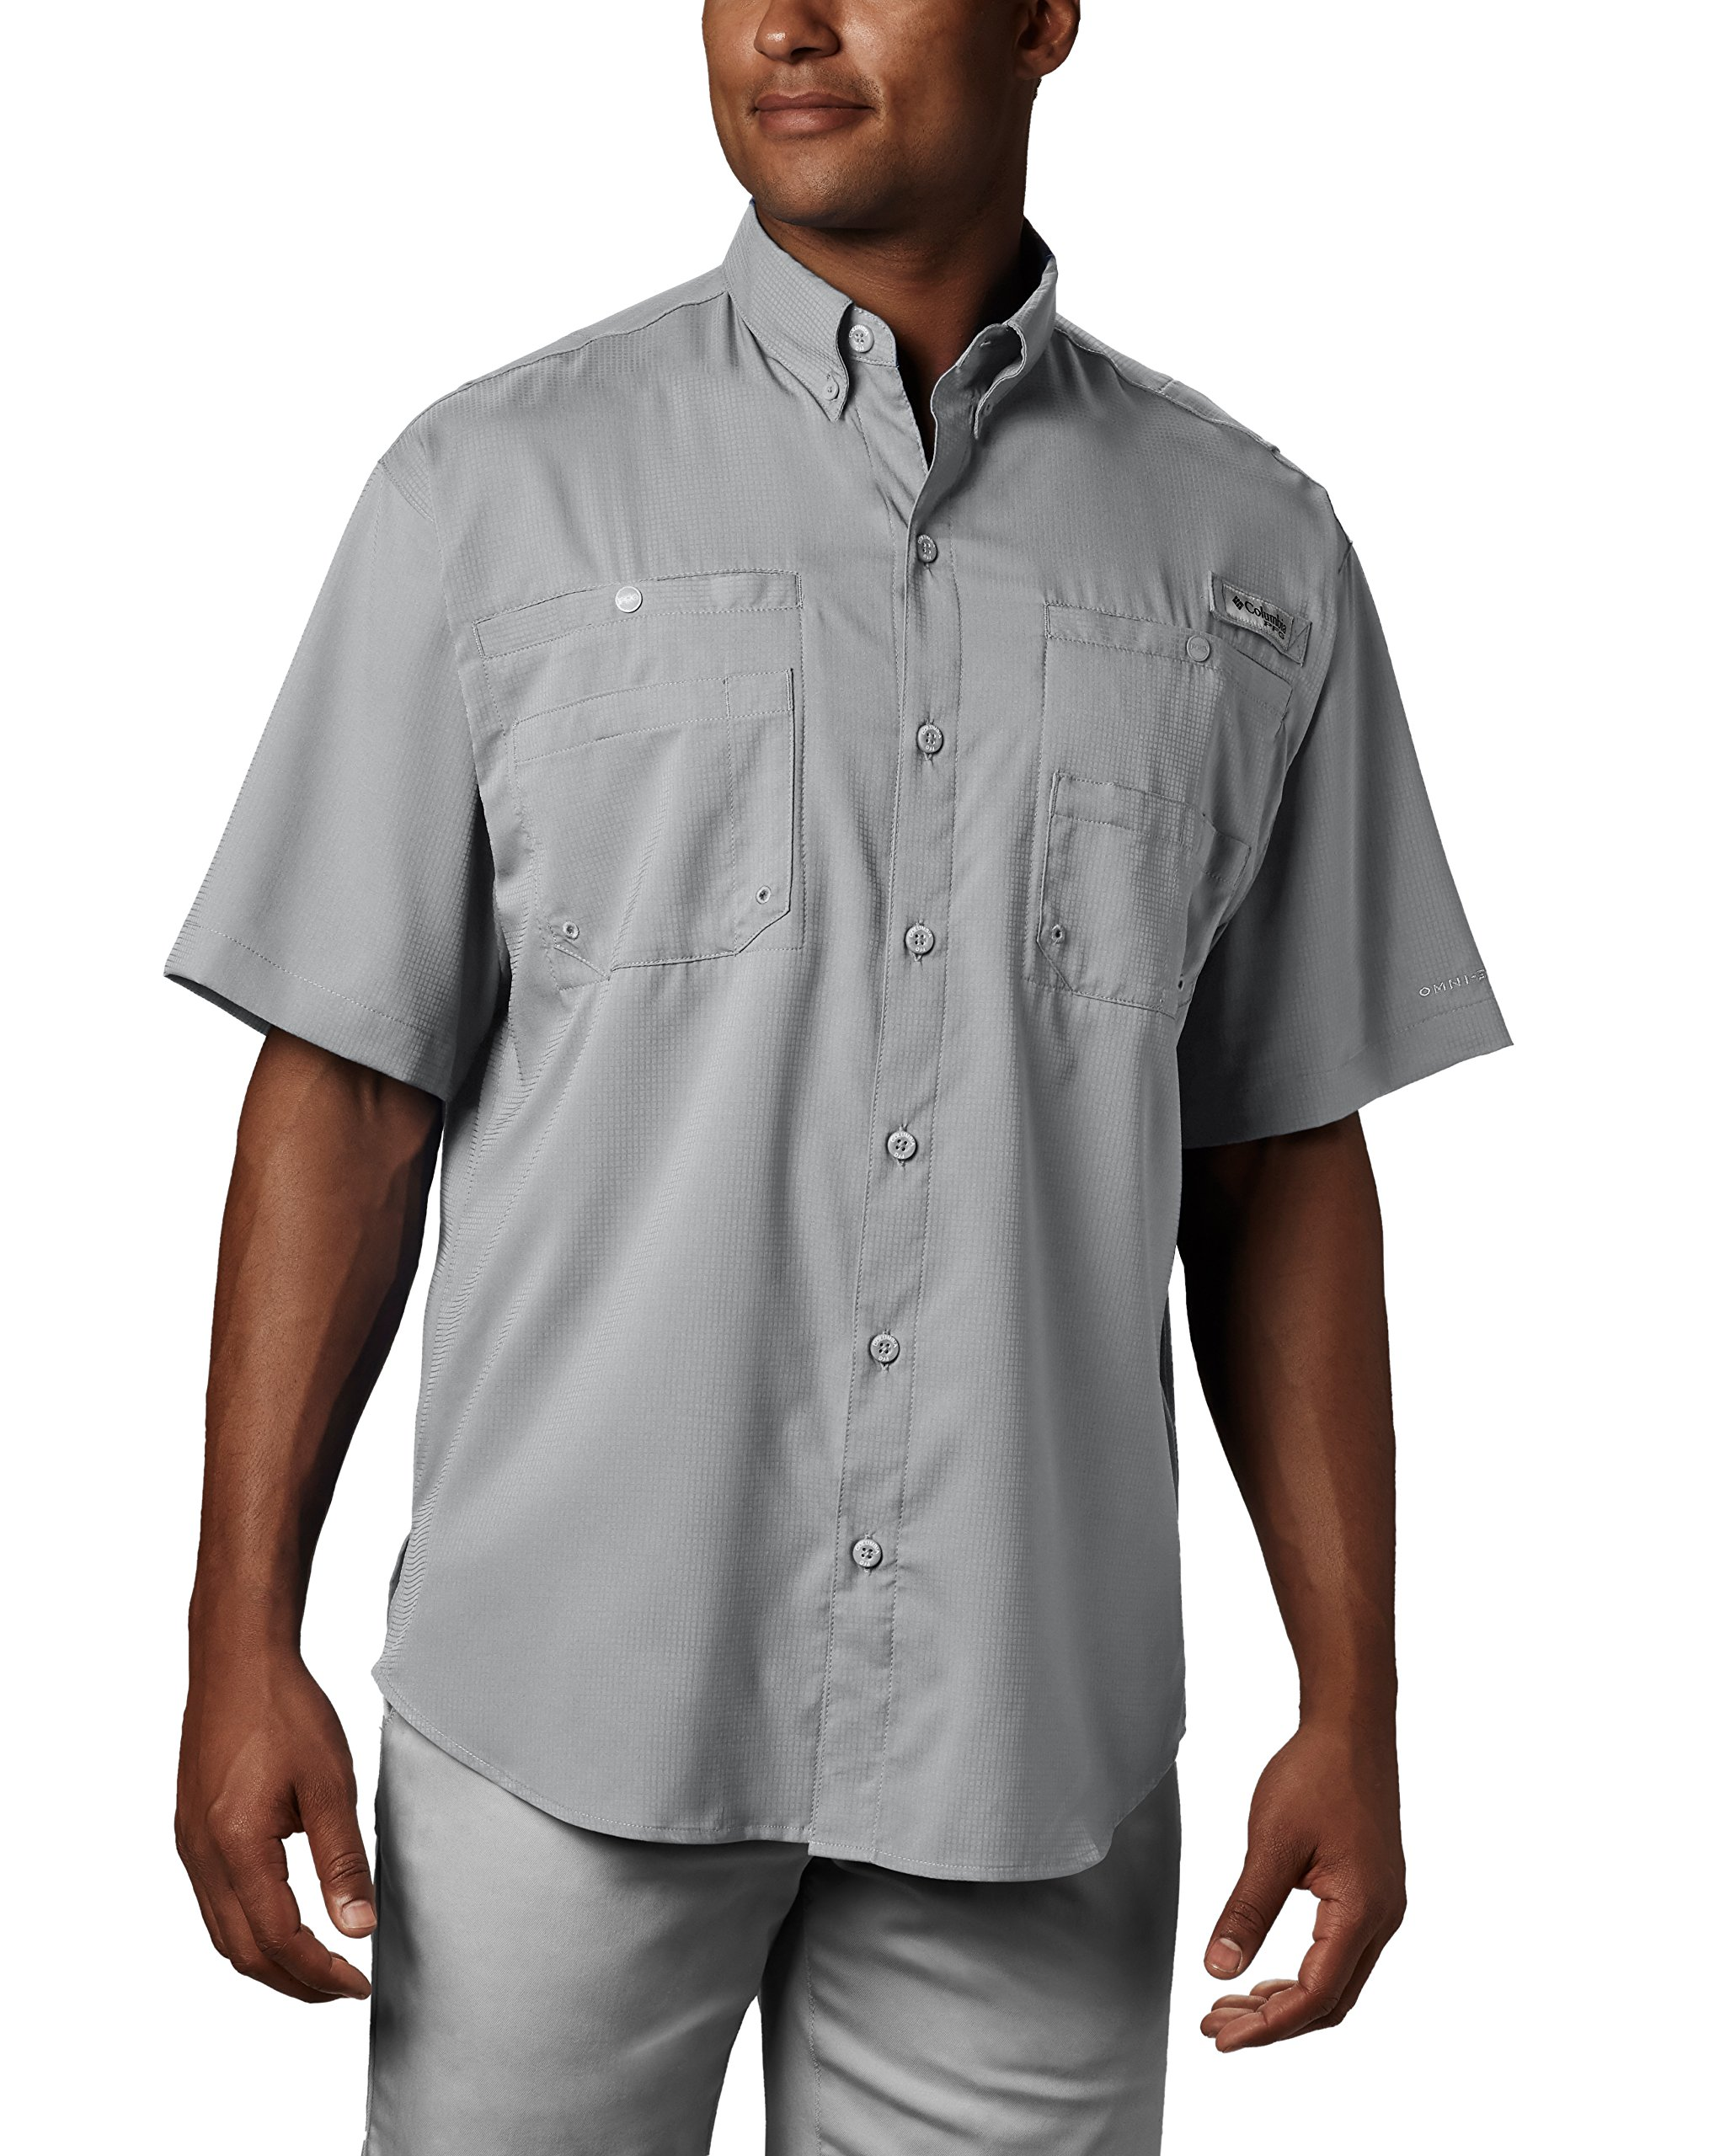 Columbia Men's Tamiami II Short Sleeve Fishing Shirt, Cool Grey, X-Small by Columbia (Image #3)